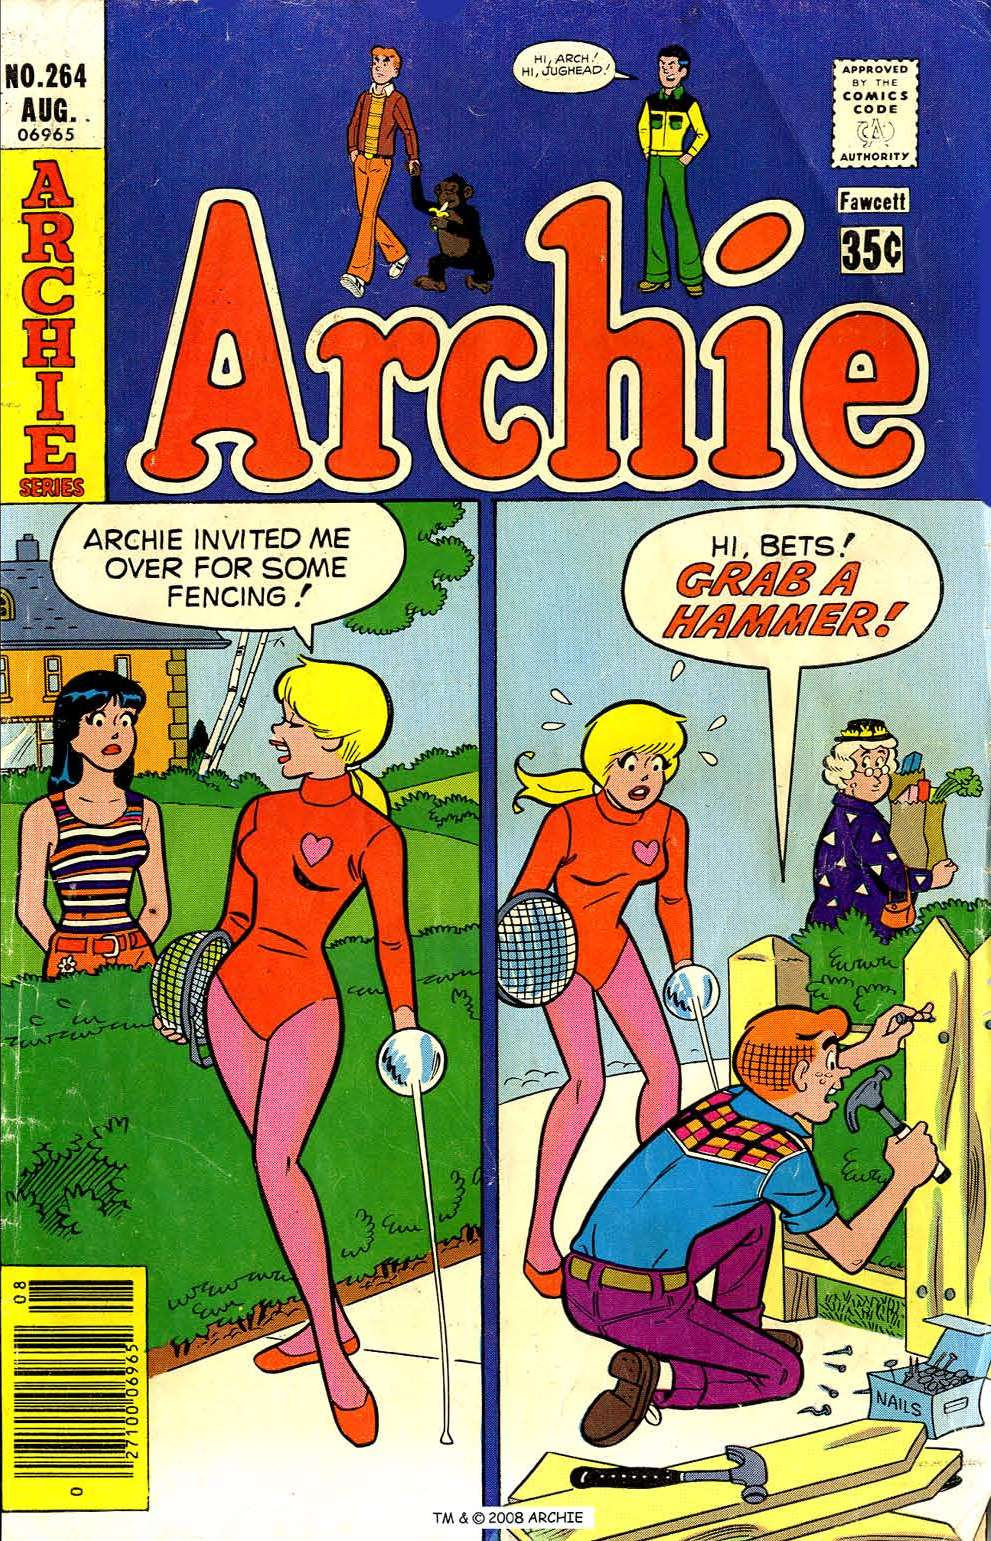 Read online Archie (1960) comic -  Issue #264 - 1